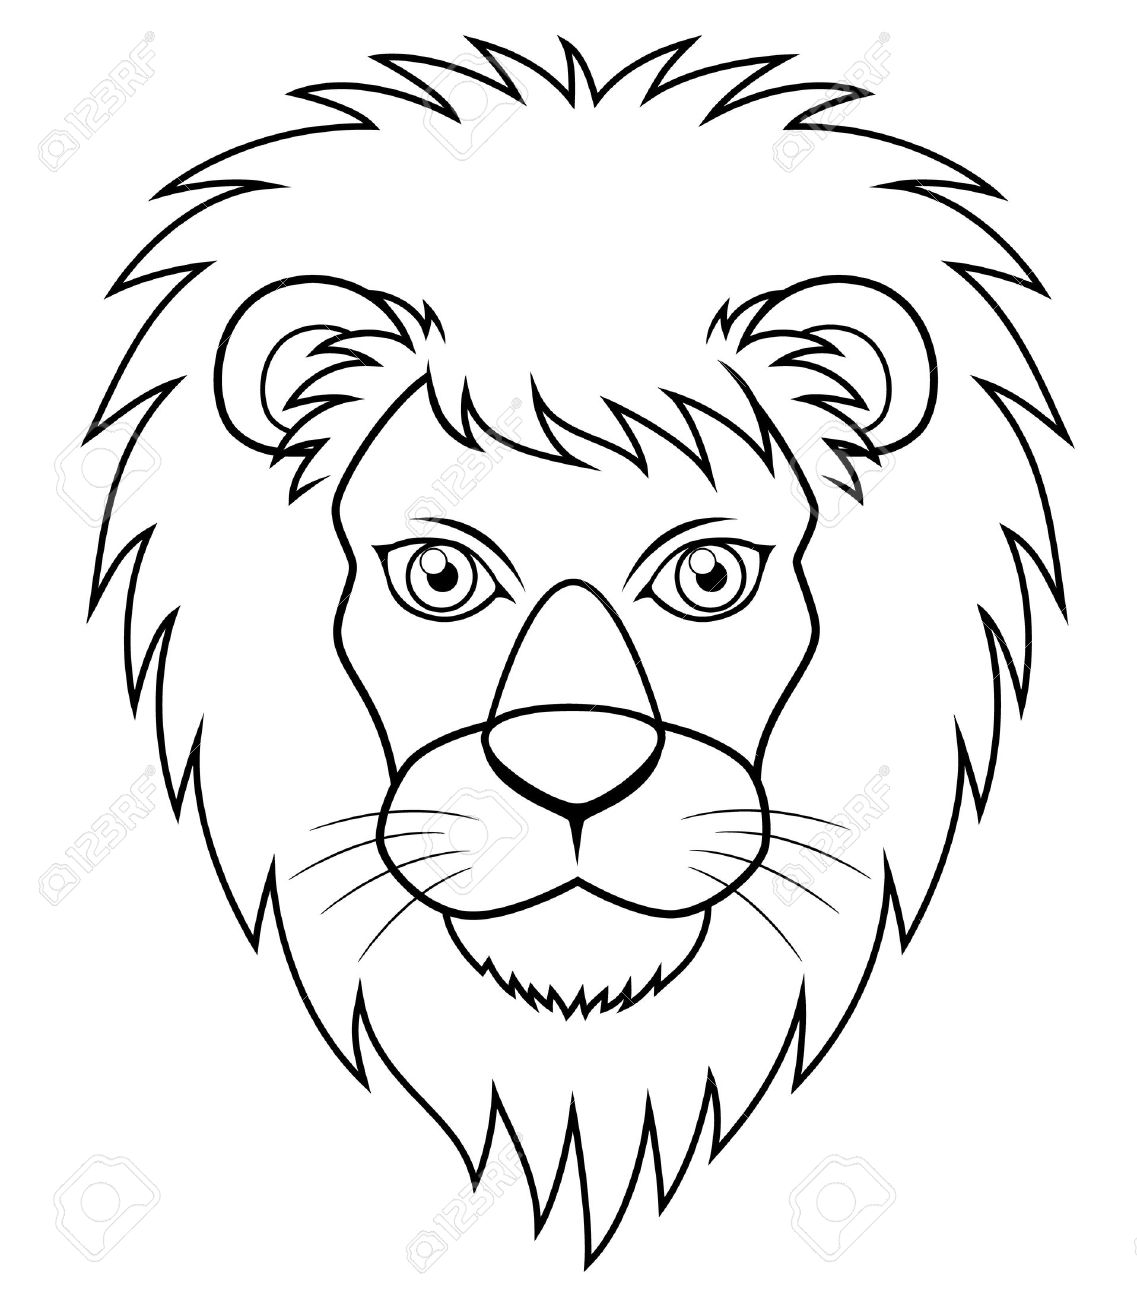 Illustration Of Lion Face Outline Royalty Free Cliparts Vectors And Stock Illustration Image 16715417 Animal outline drawings | lion outline coloring online. illustration of lion face outline